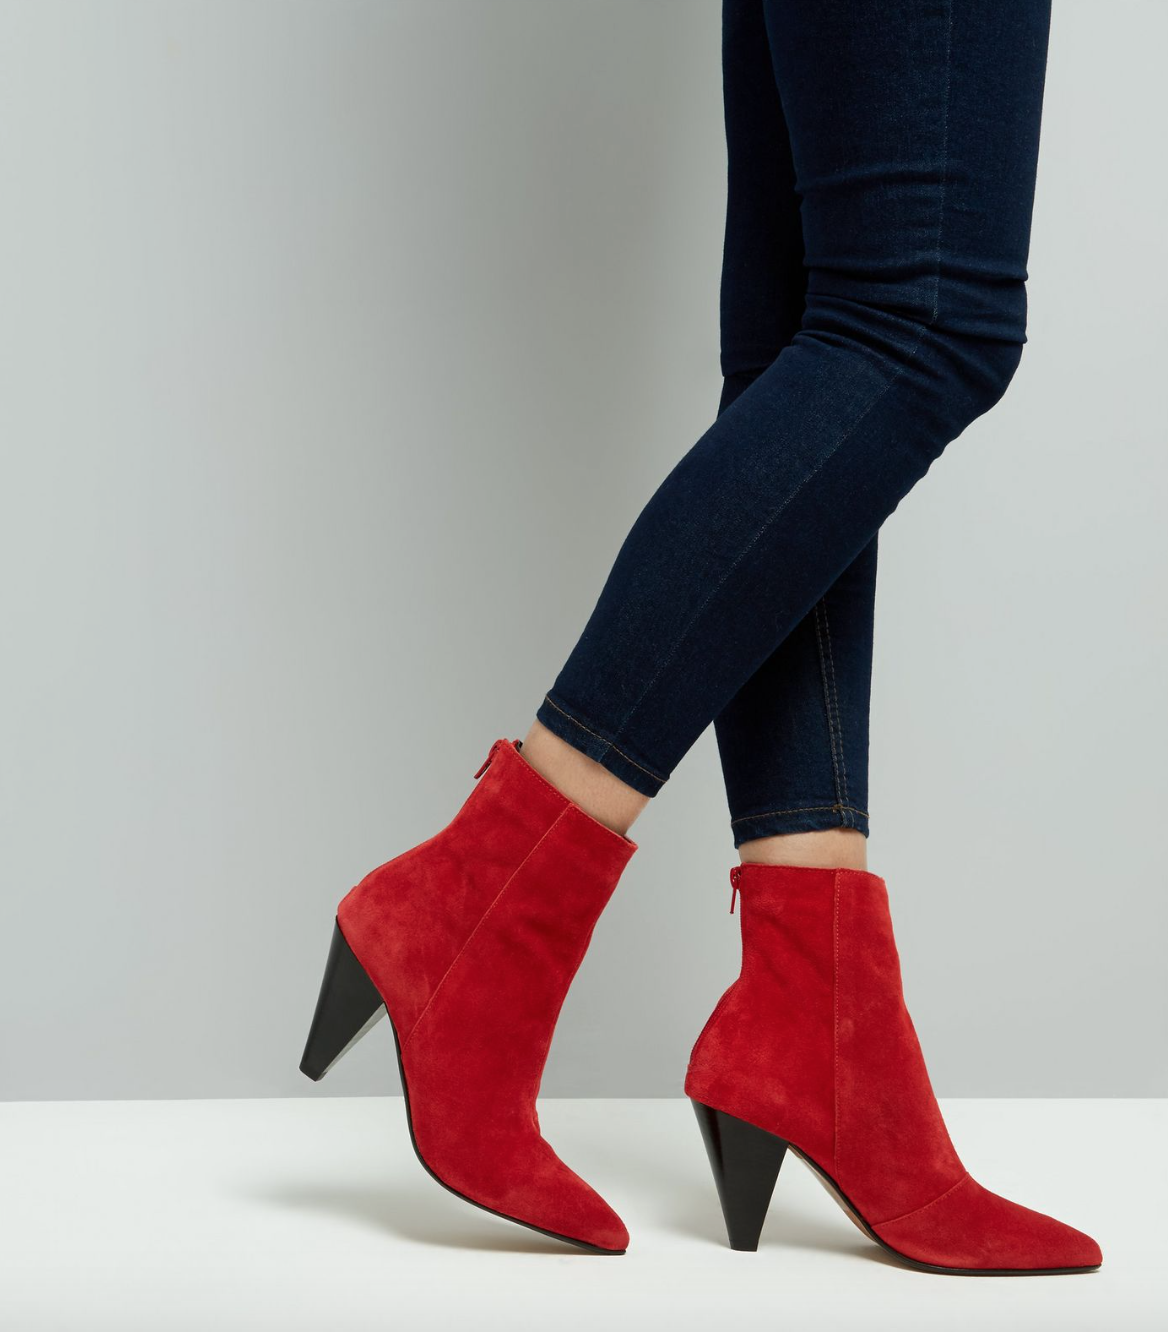 New Look red suede boots